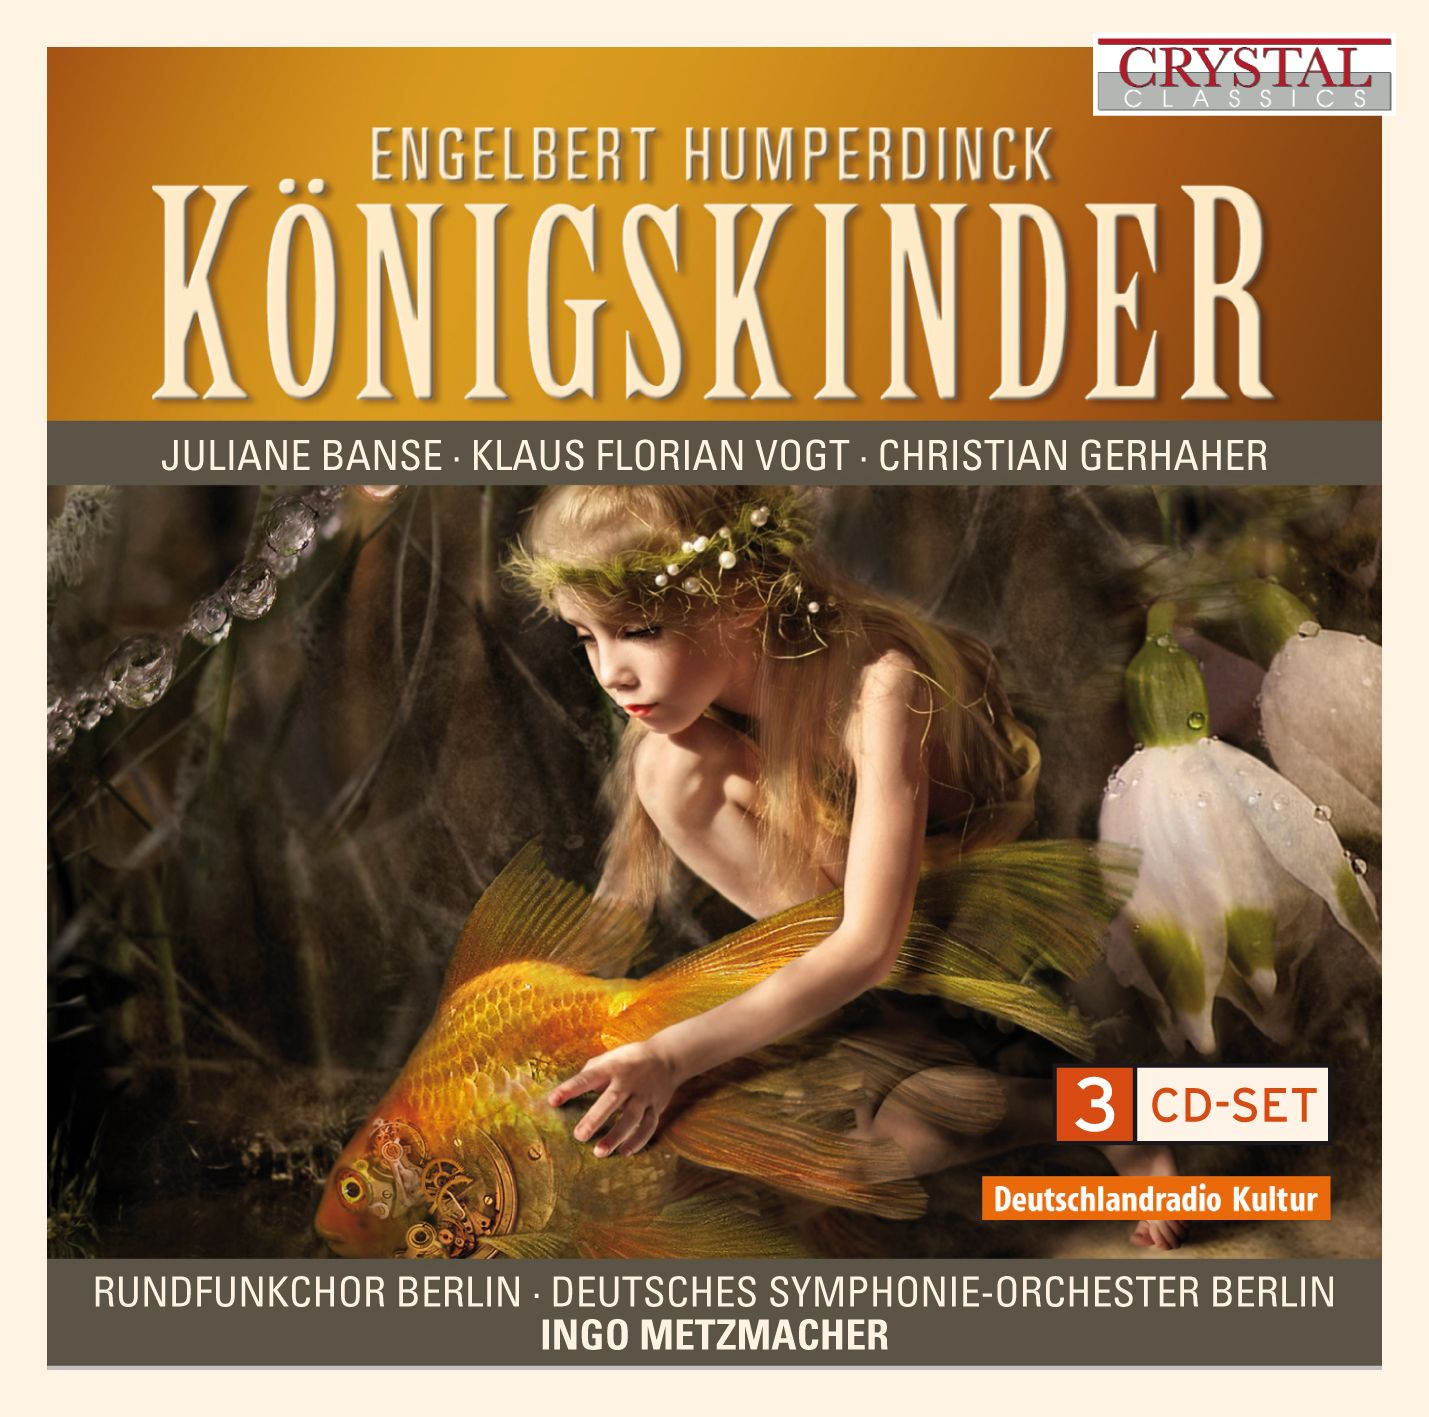 Koenigskinder ENGELBERT HUMPERDINCK CD Cover